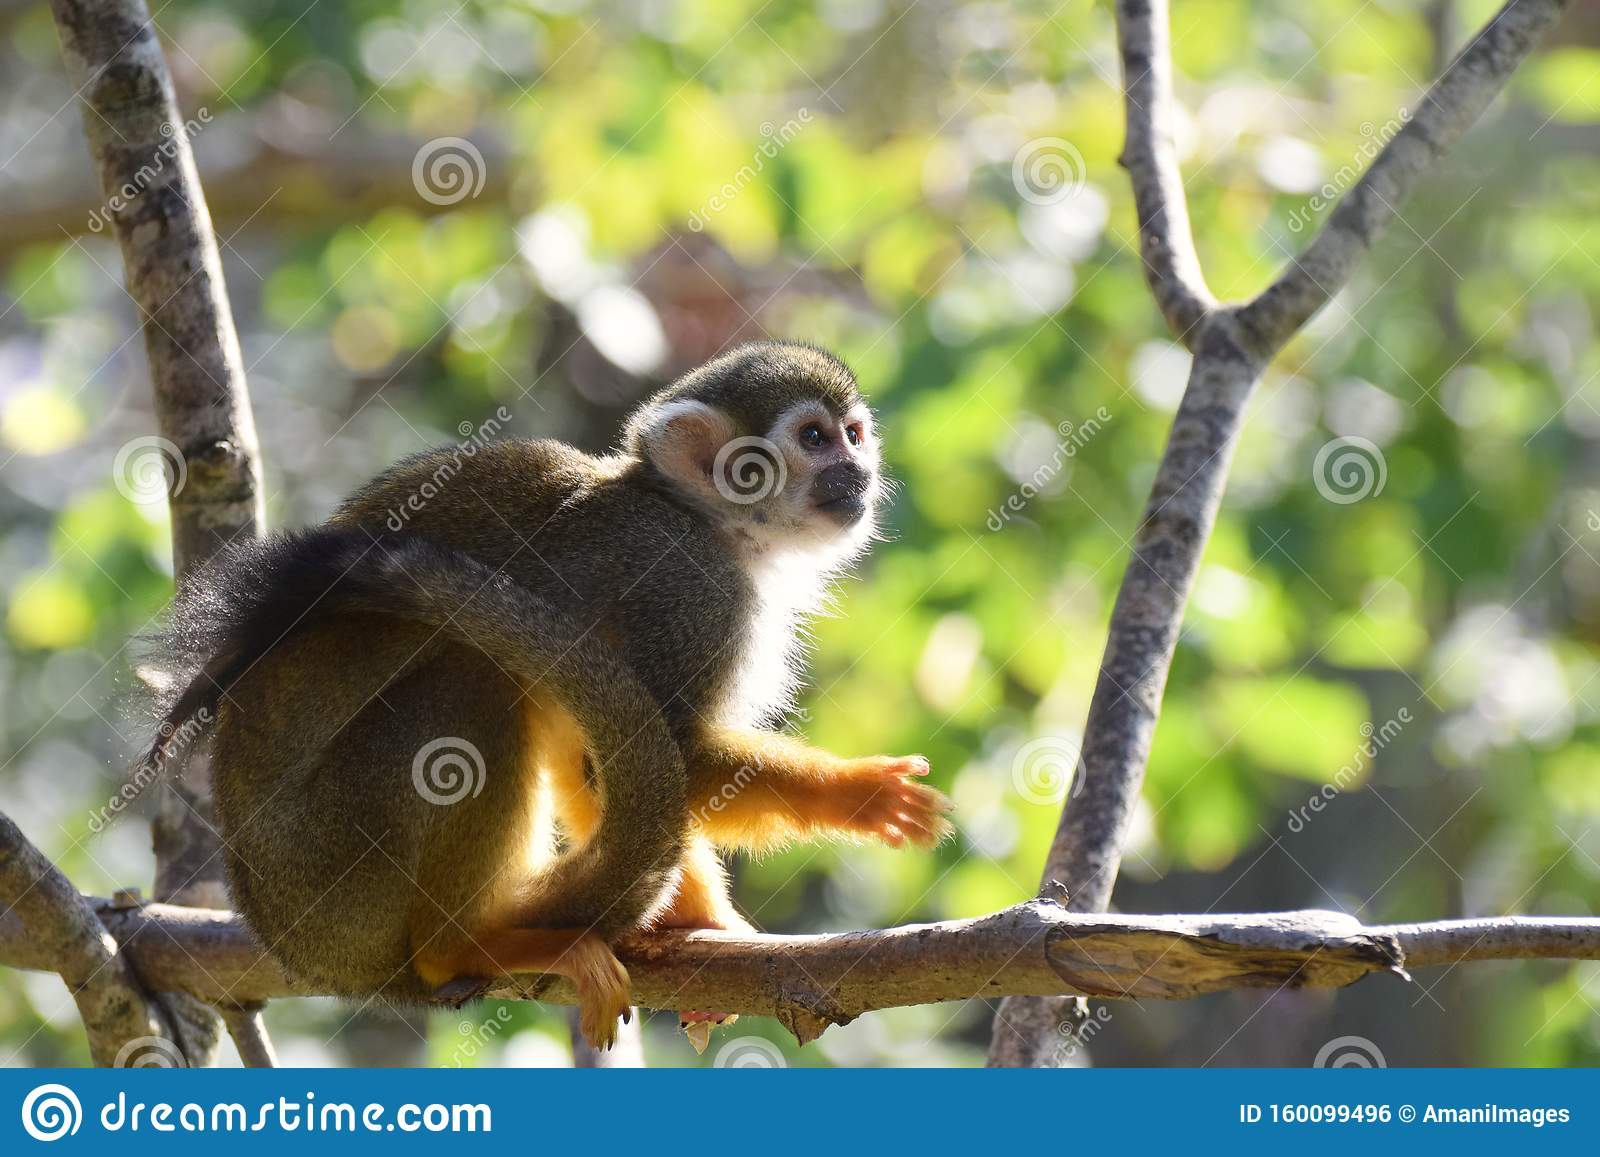 Squirrel monkey sitting on a tree branch in a leafy natural forest